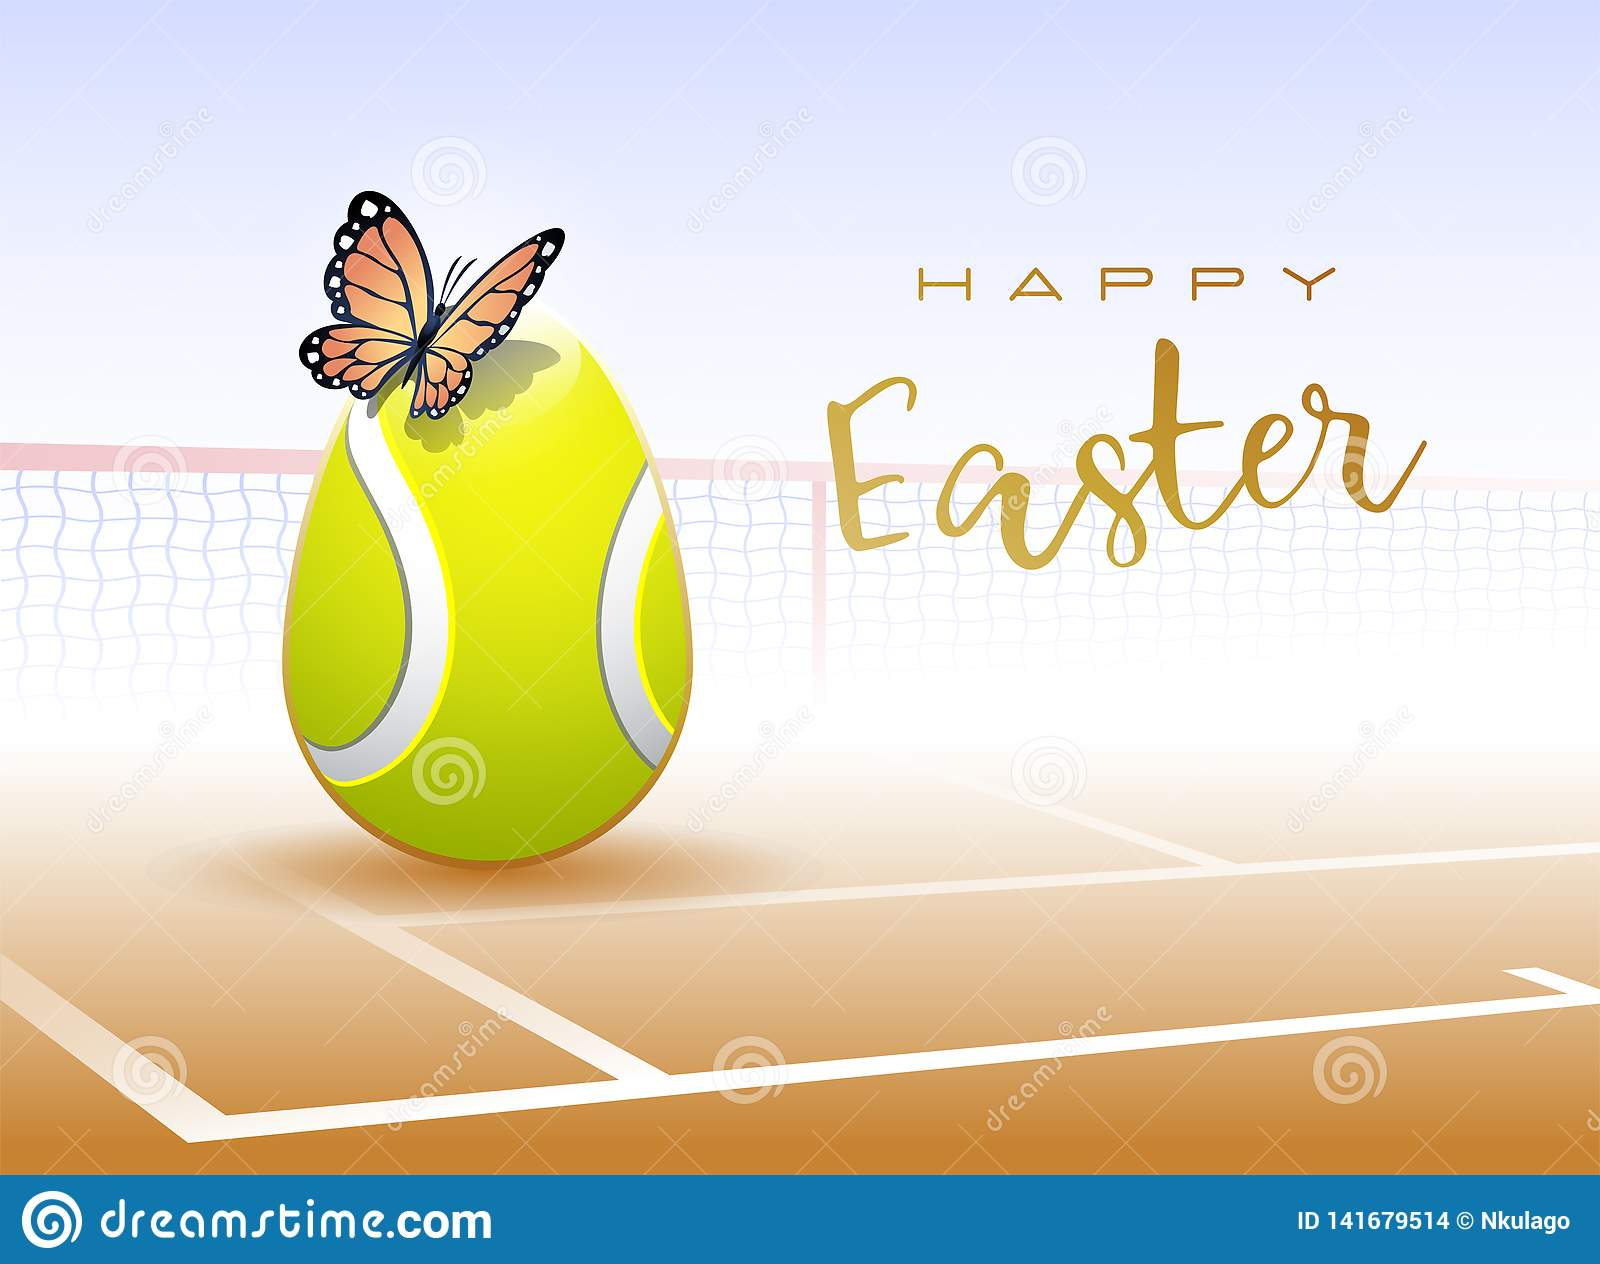 Happy Easter sports greeting card. Tennis